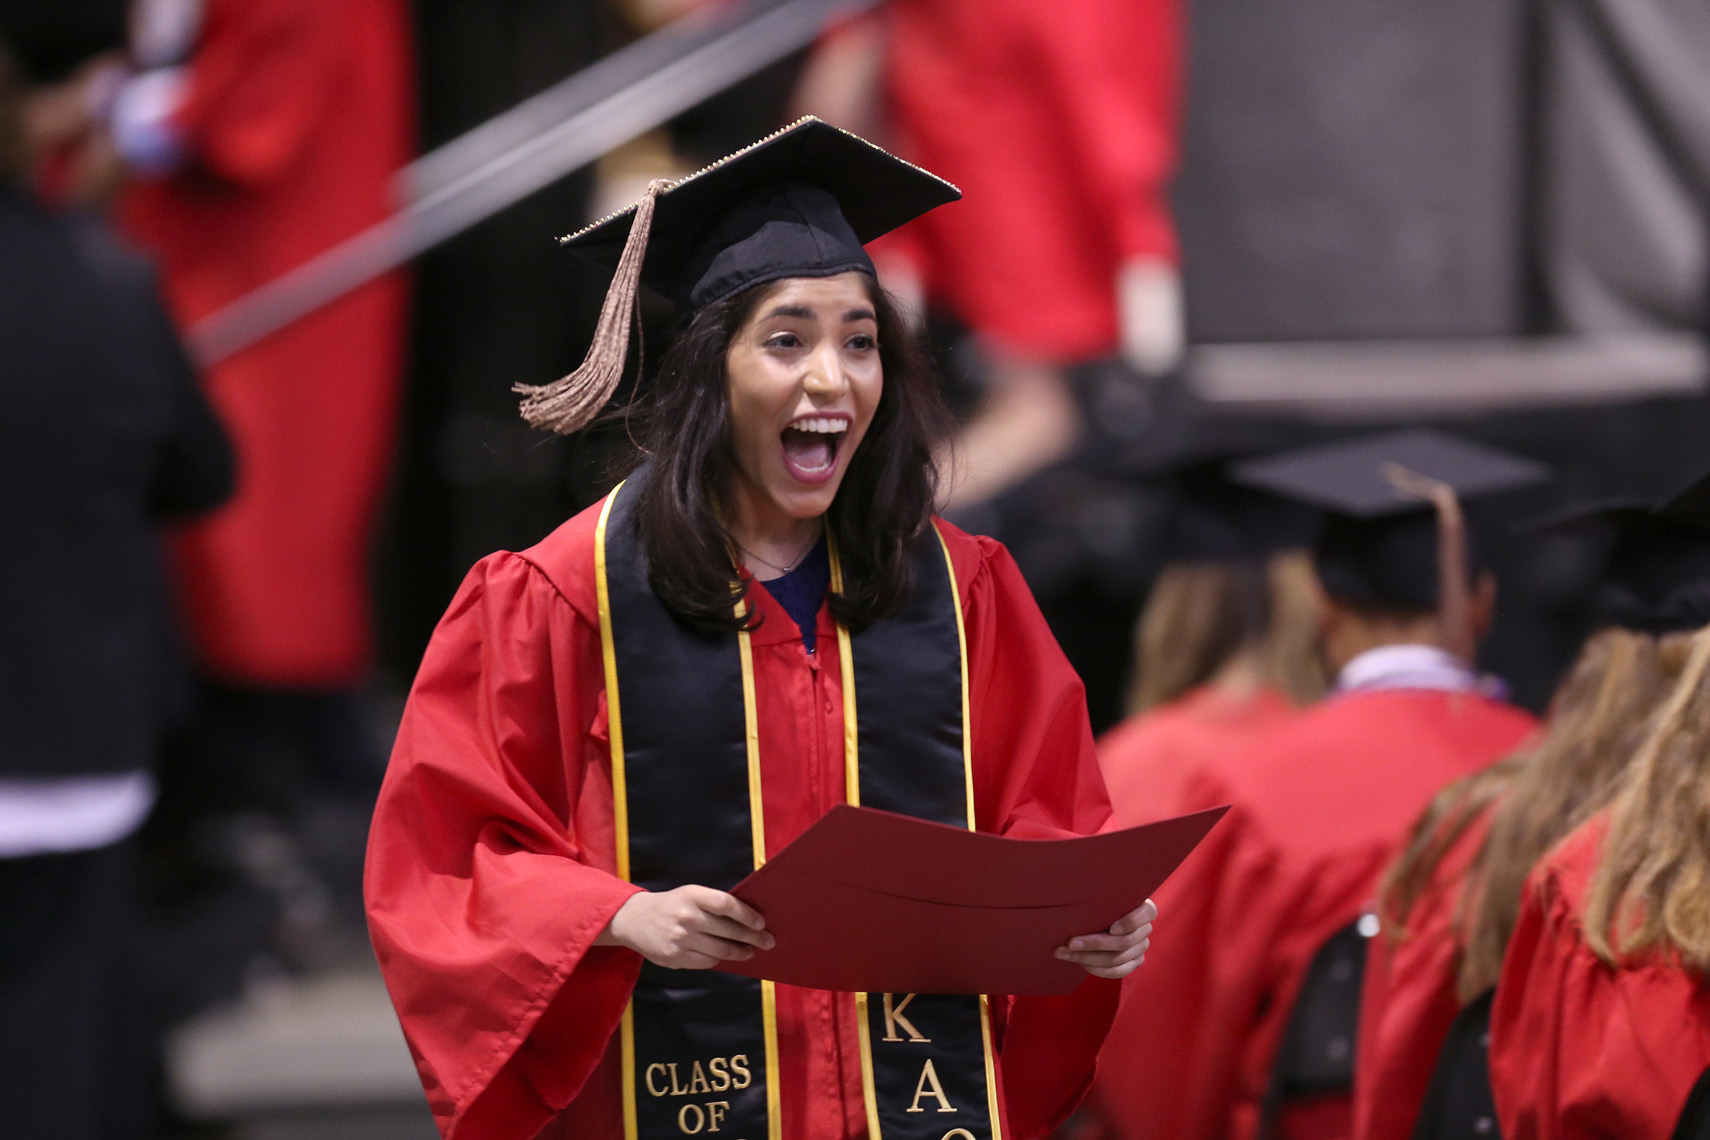 A Boston University graduate shows her emotions after receiving her diploma.